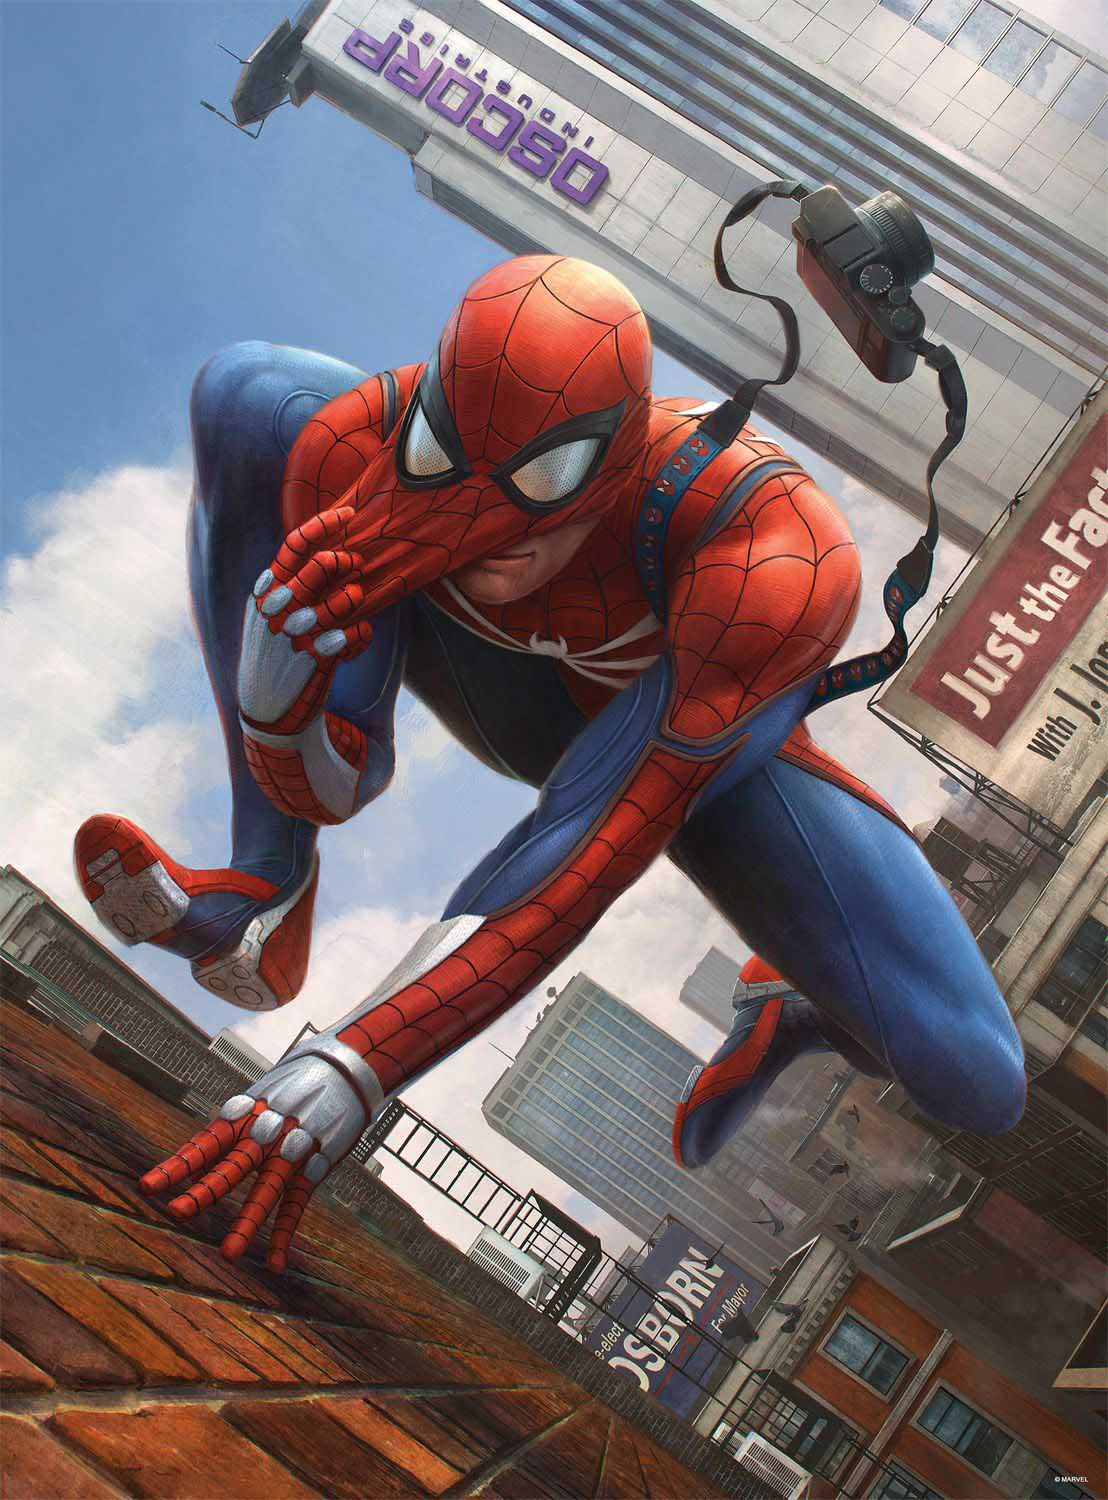 Amazing Spider Man 1 Variant Super-heroes Jigsaw Puzzle